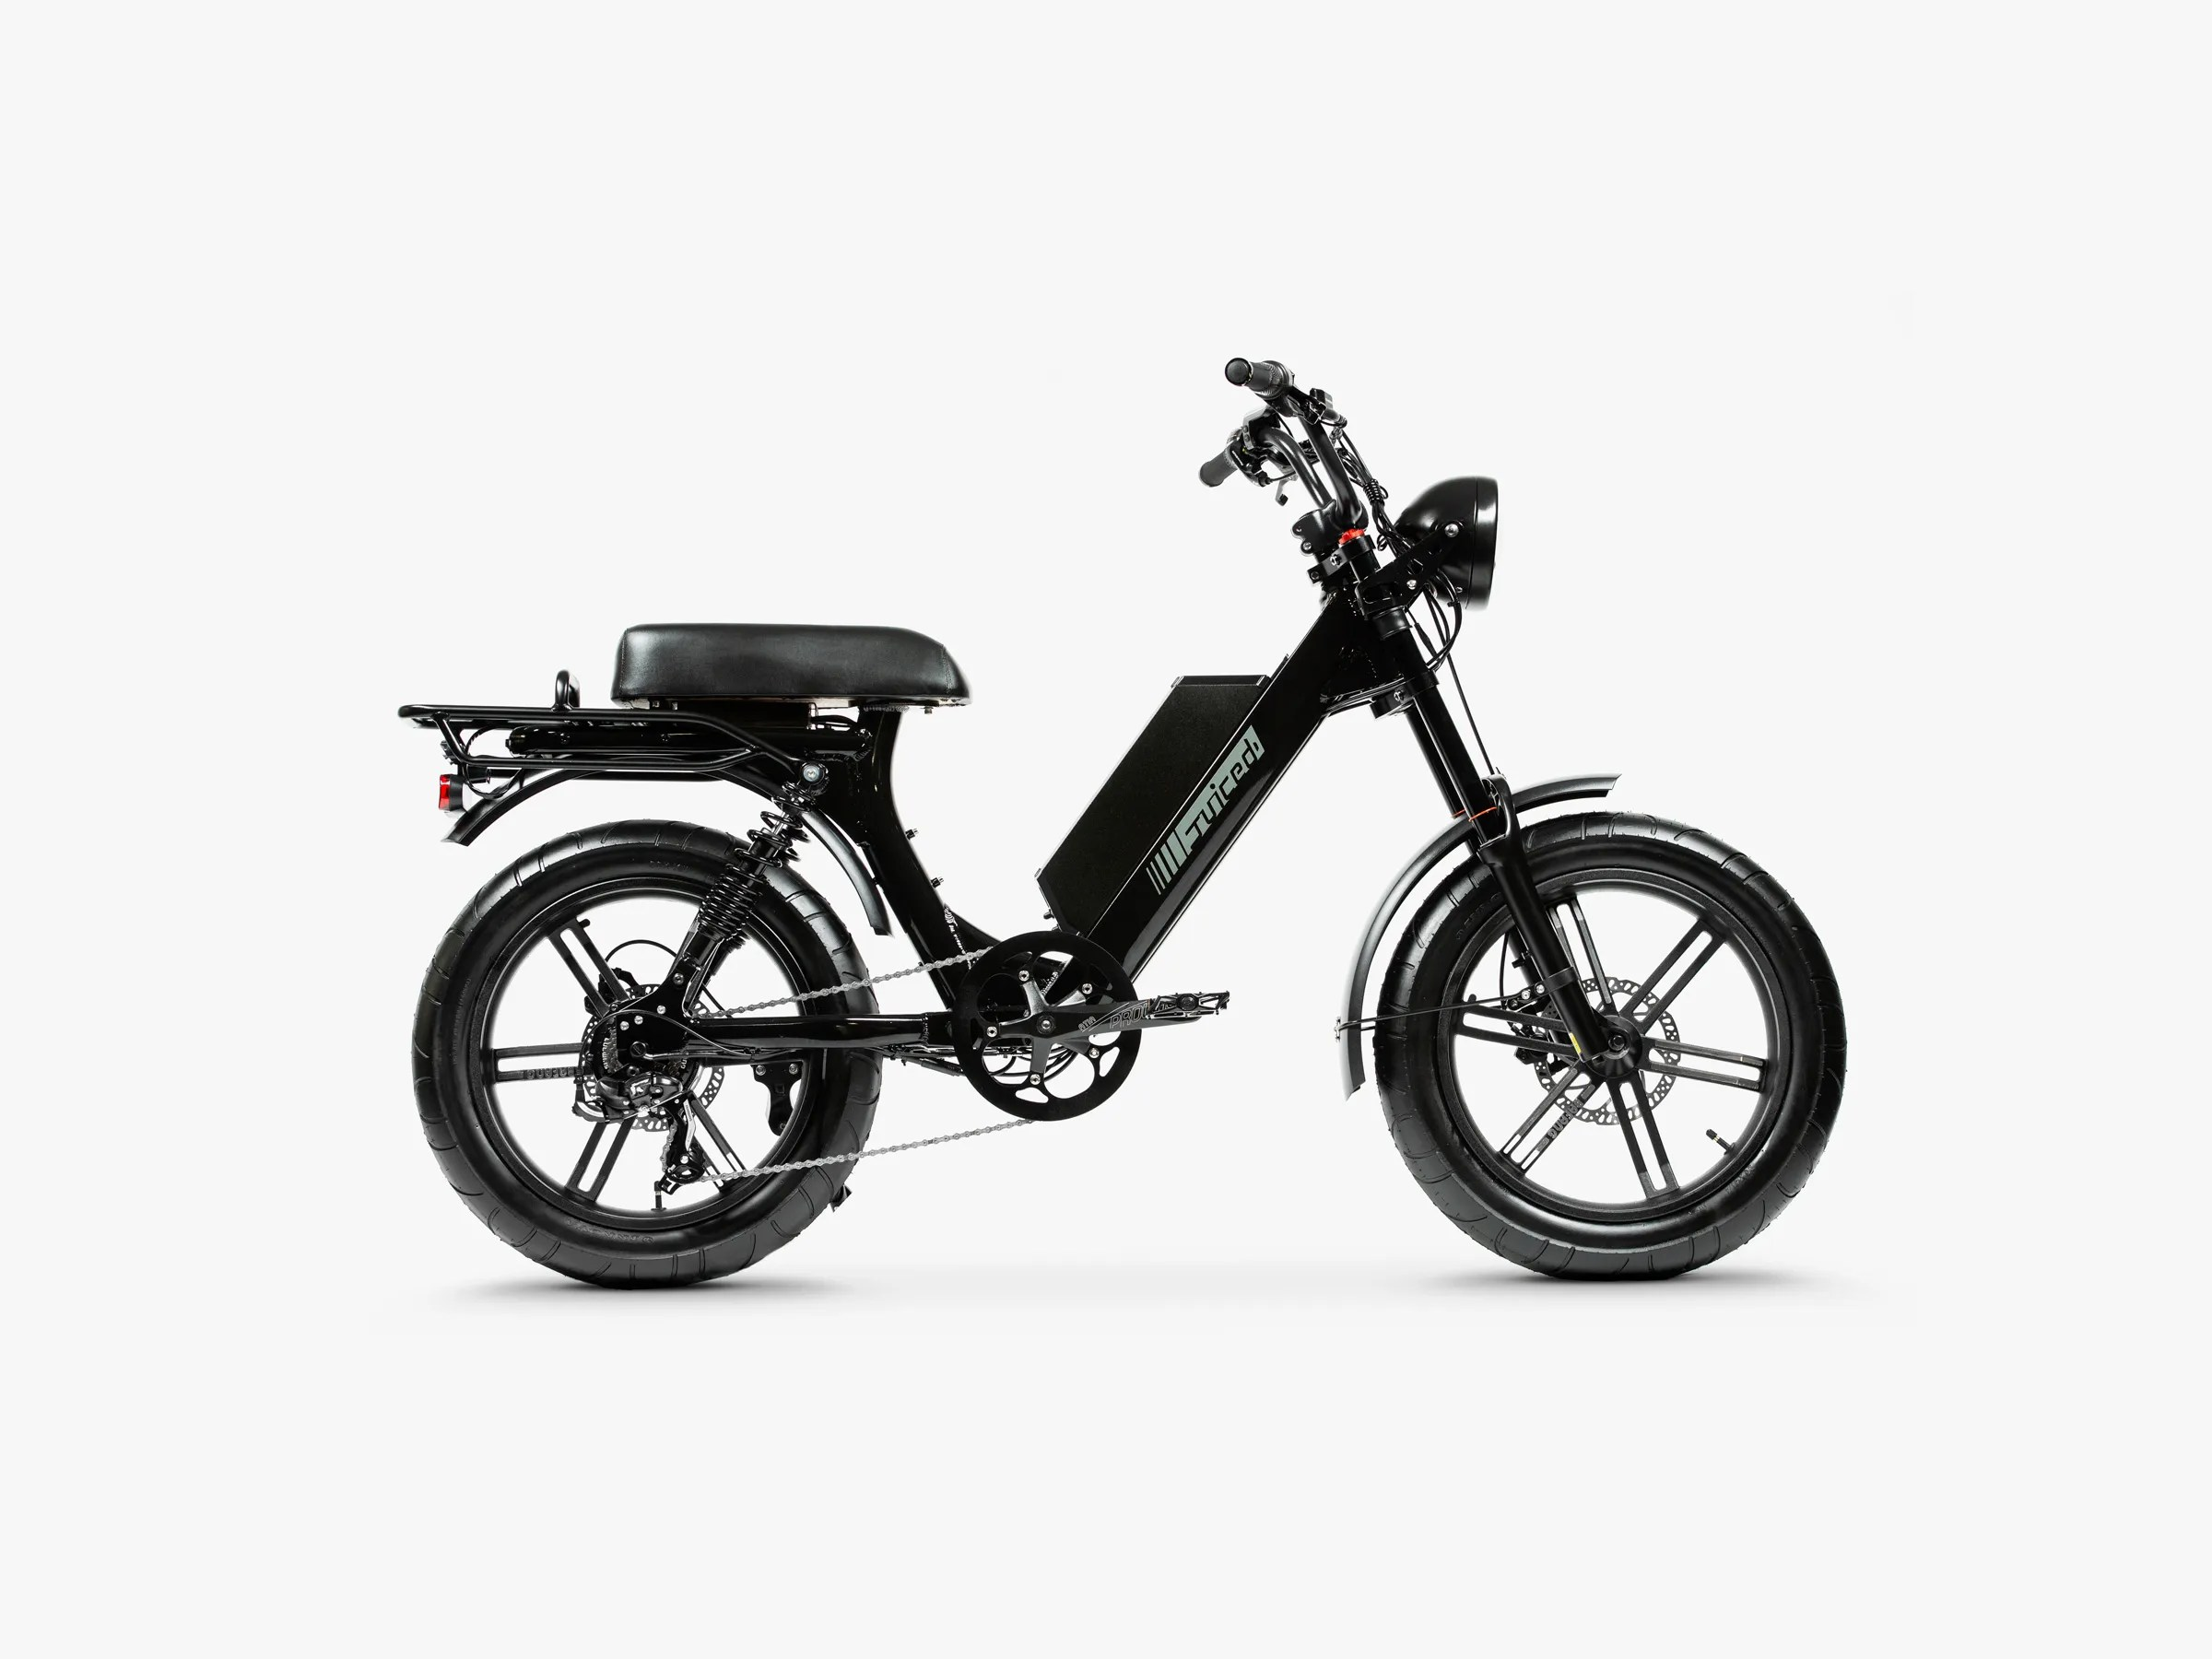 Juiced Bikes Scorpion Rides The Line Between Cycling And